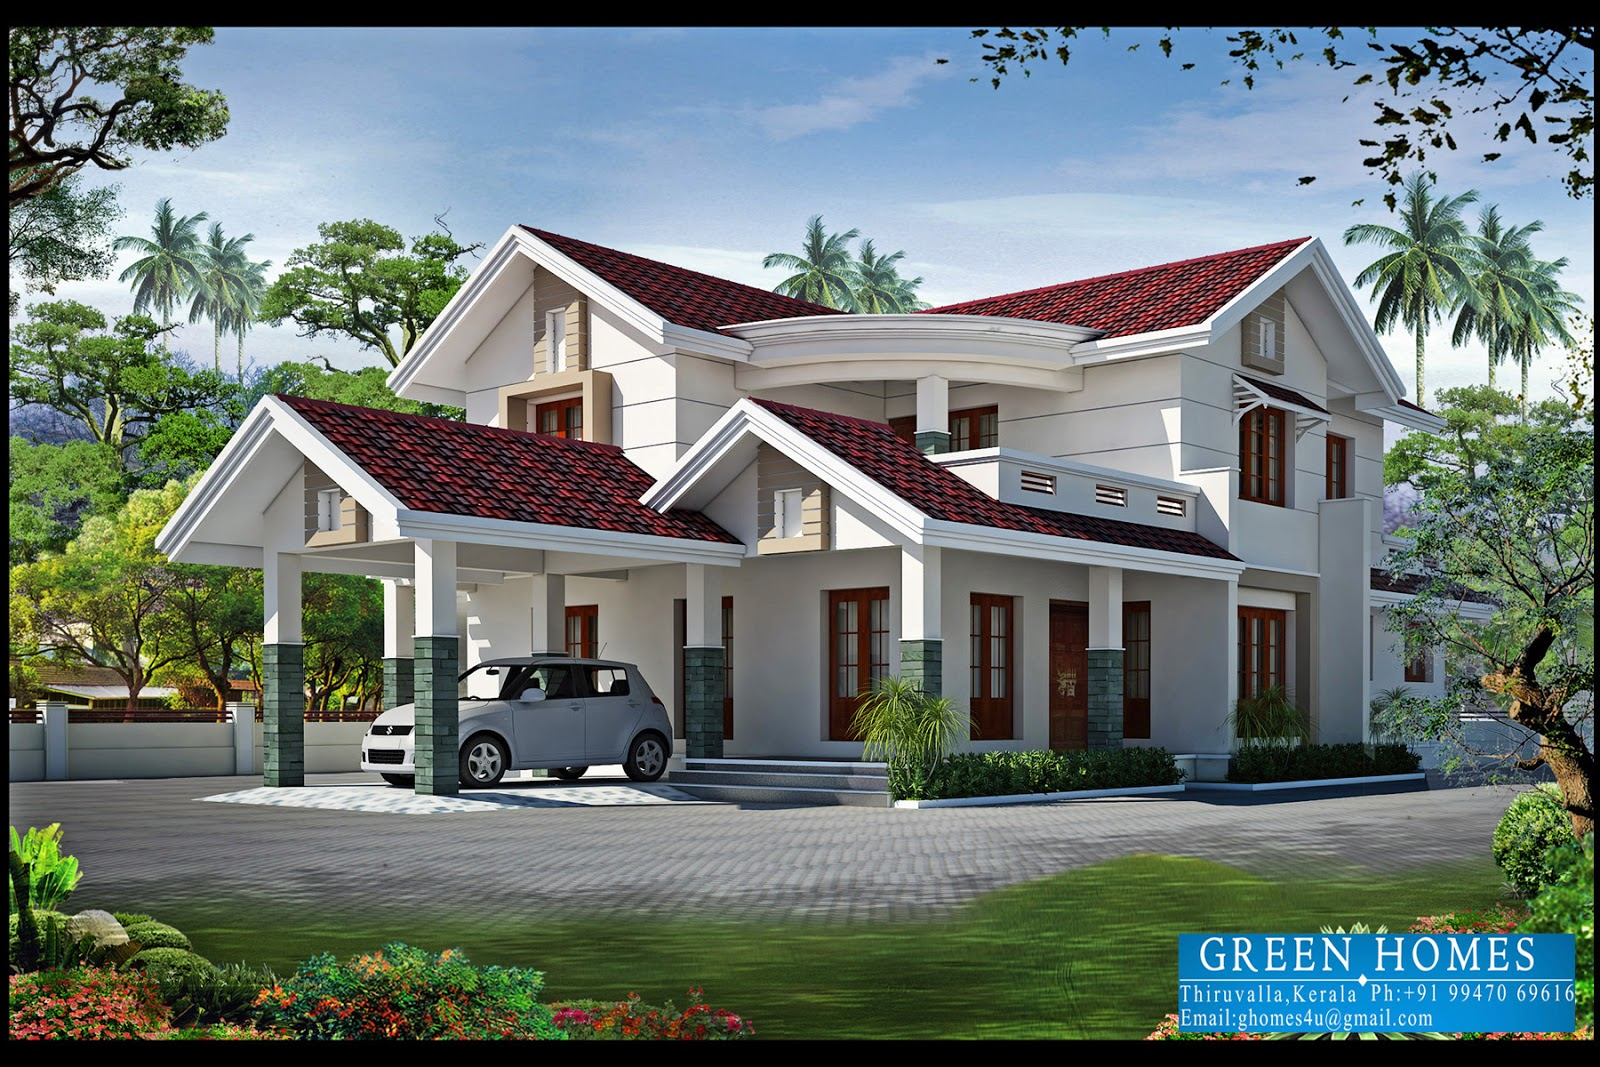 Green homes december 2012 for Green home designs